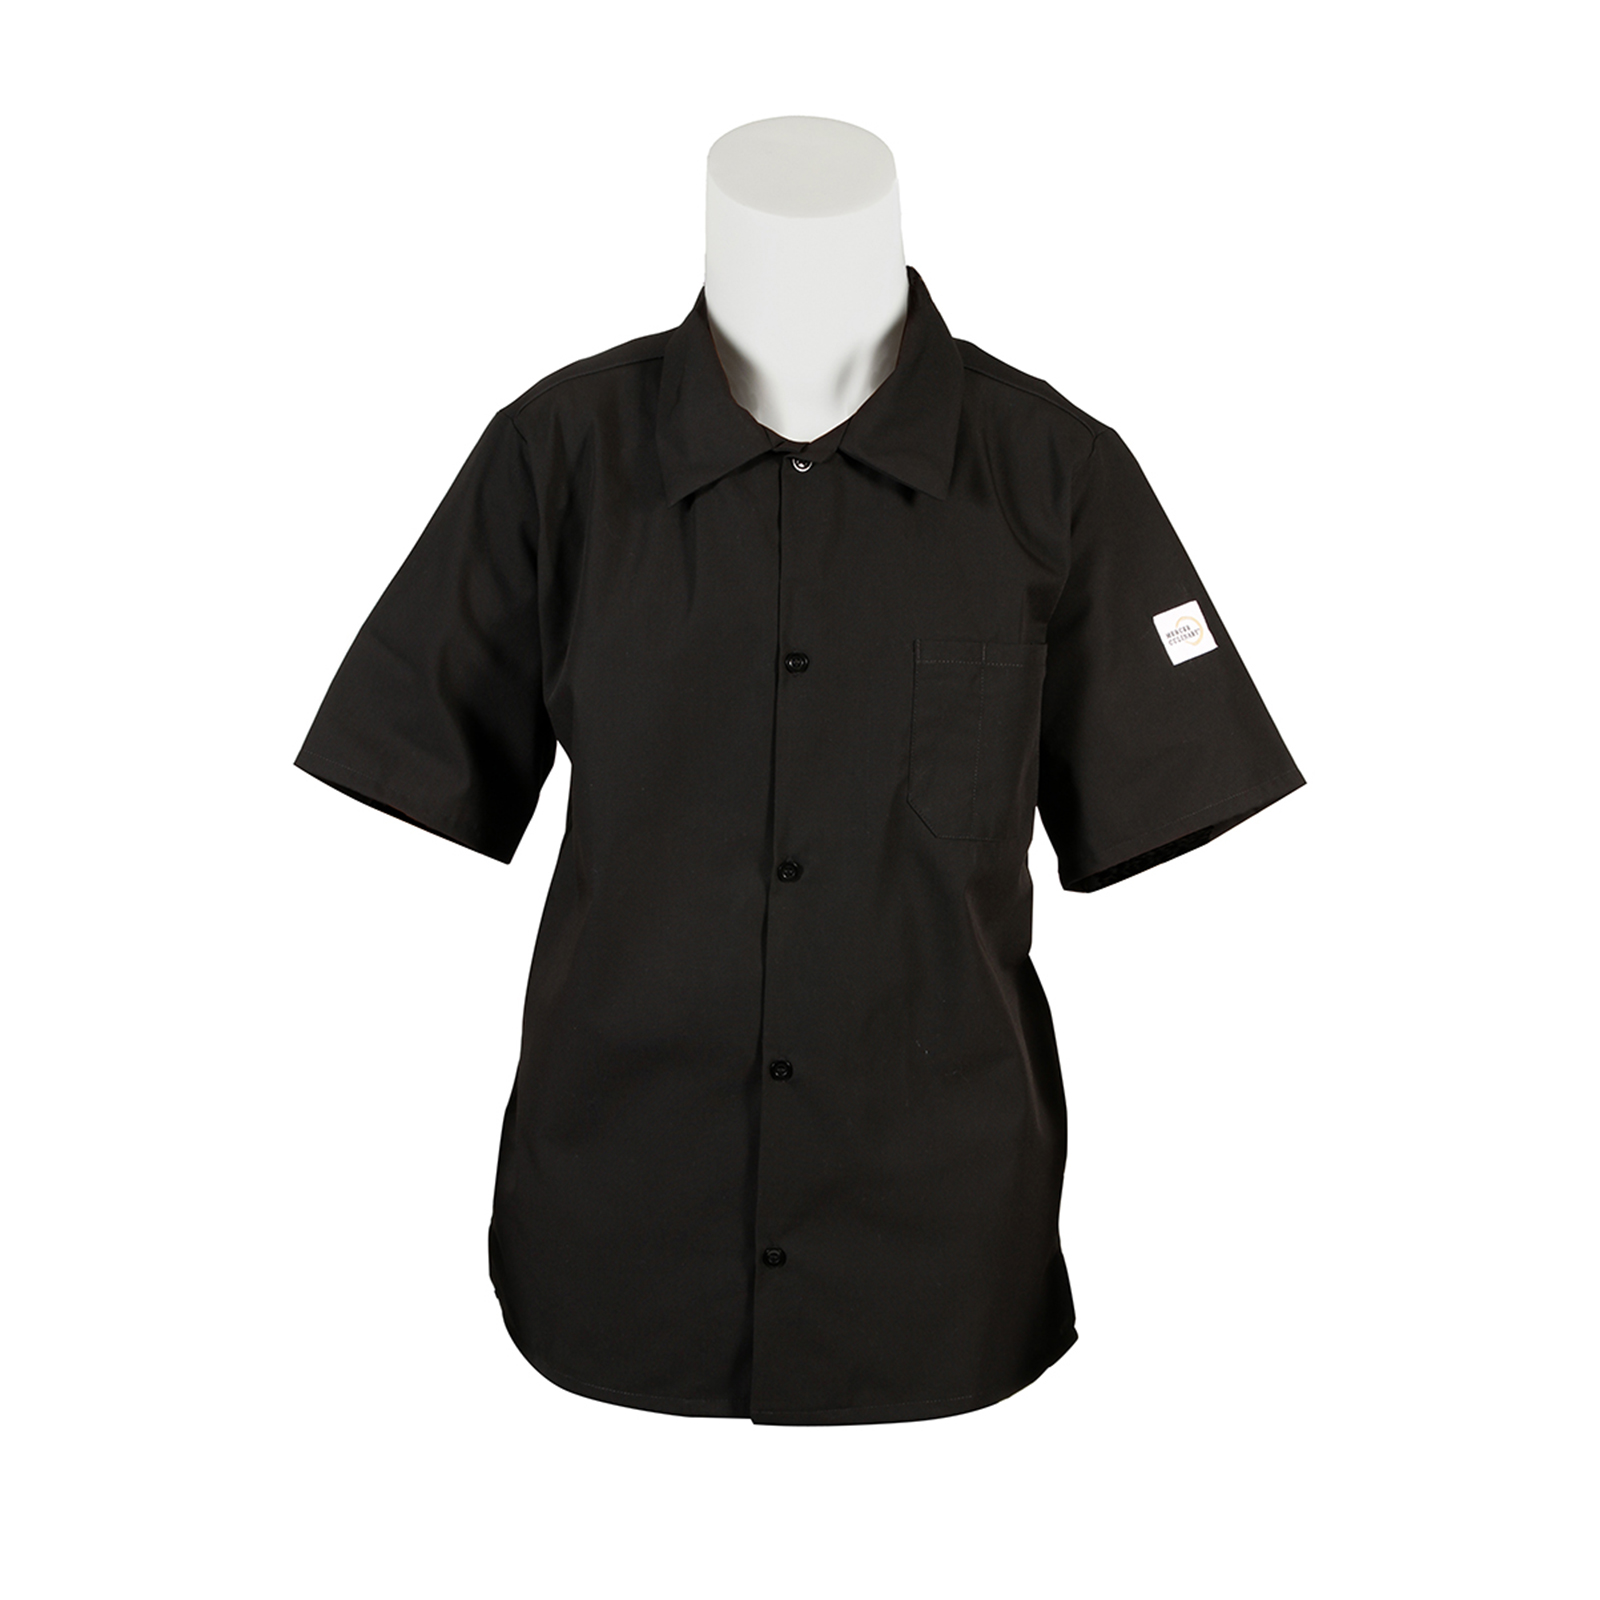 Mercer Culinary M60200BK4X cook's shirt